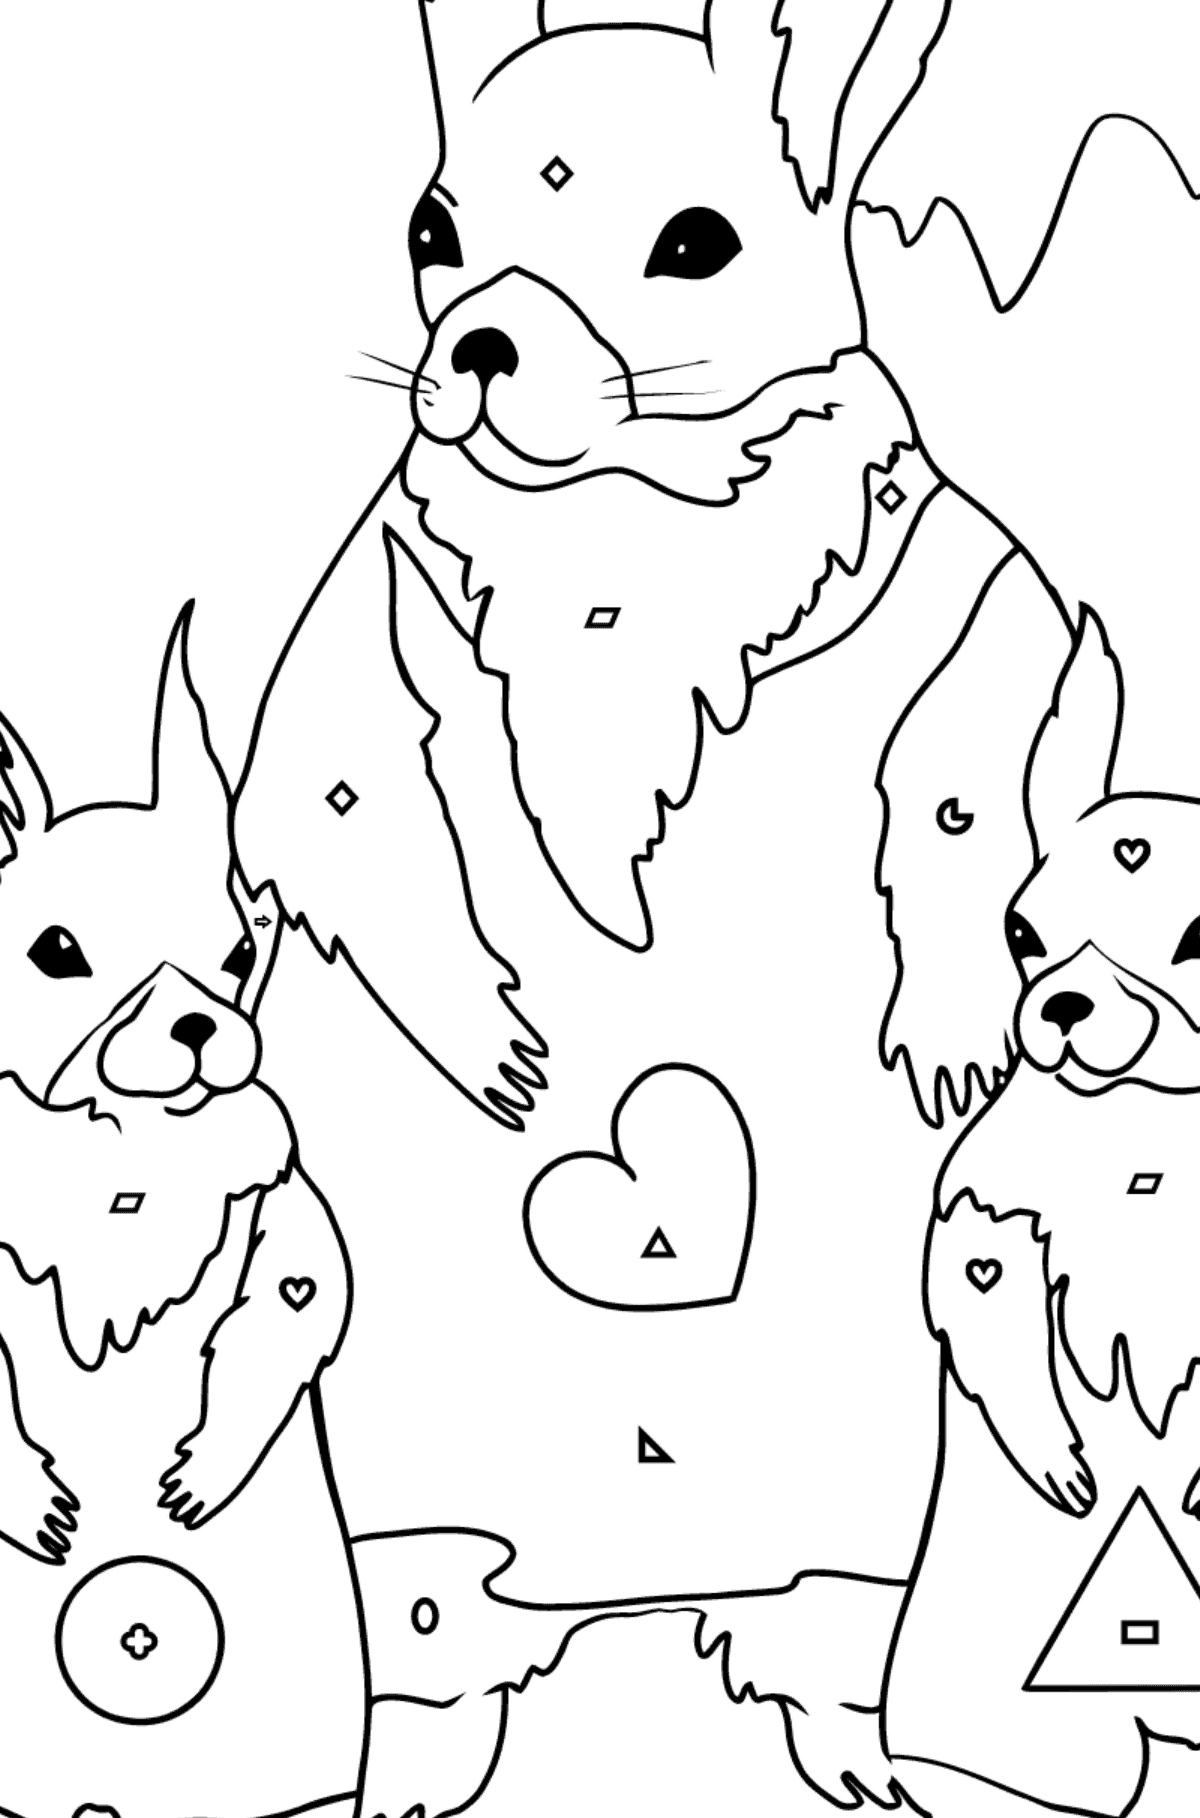 Spring Coloring Page - Beautiful Squirrels for Kids  - Color by Geometric Shapes